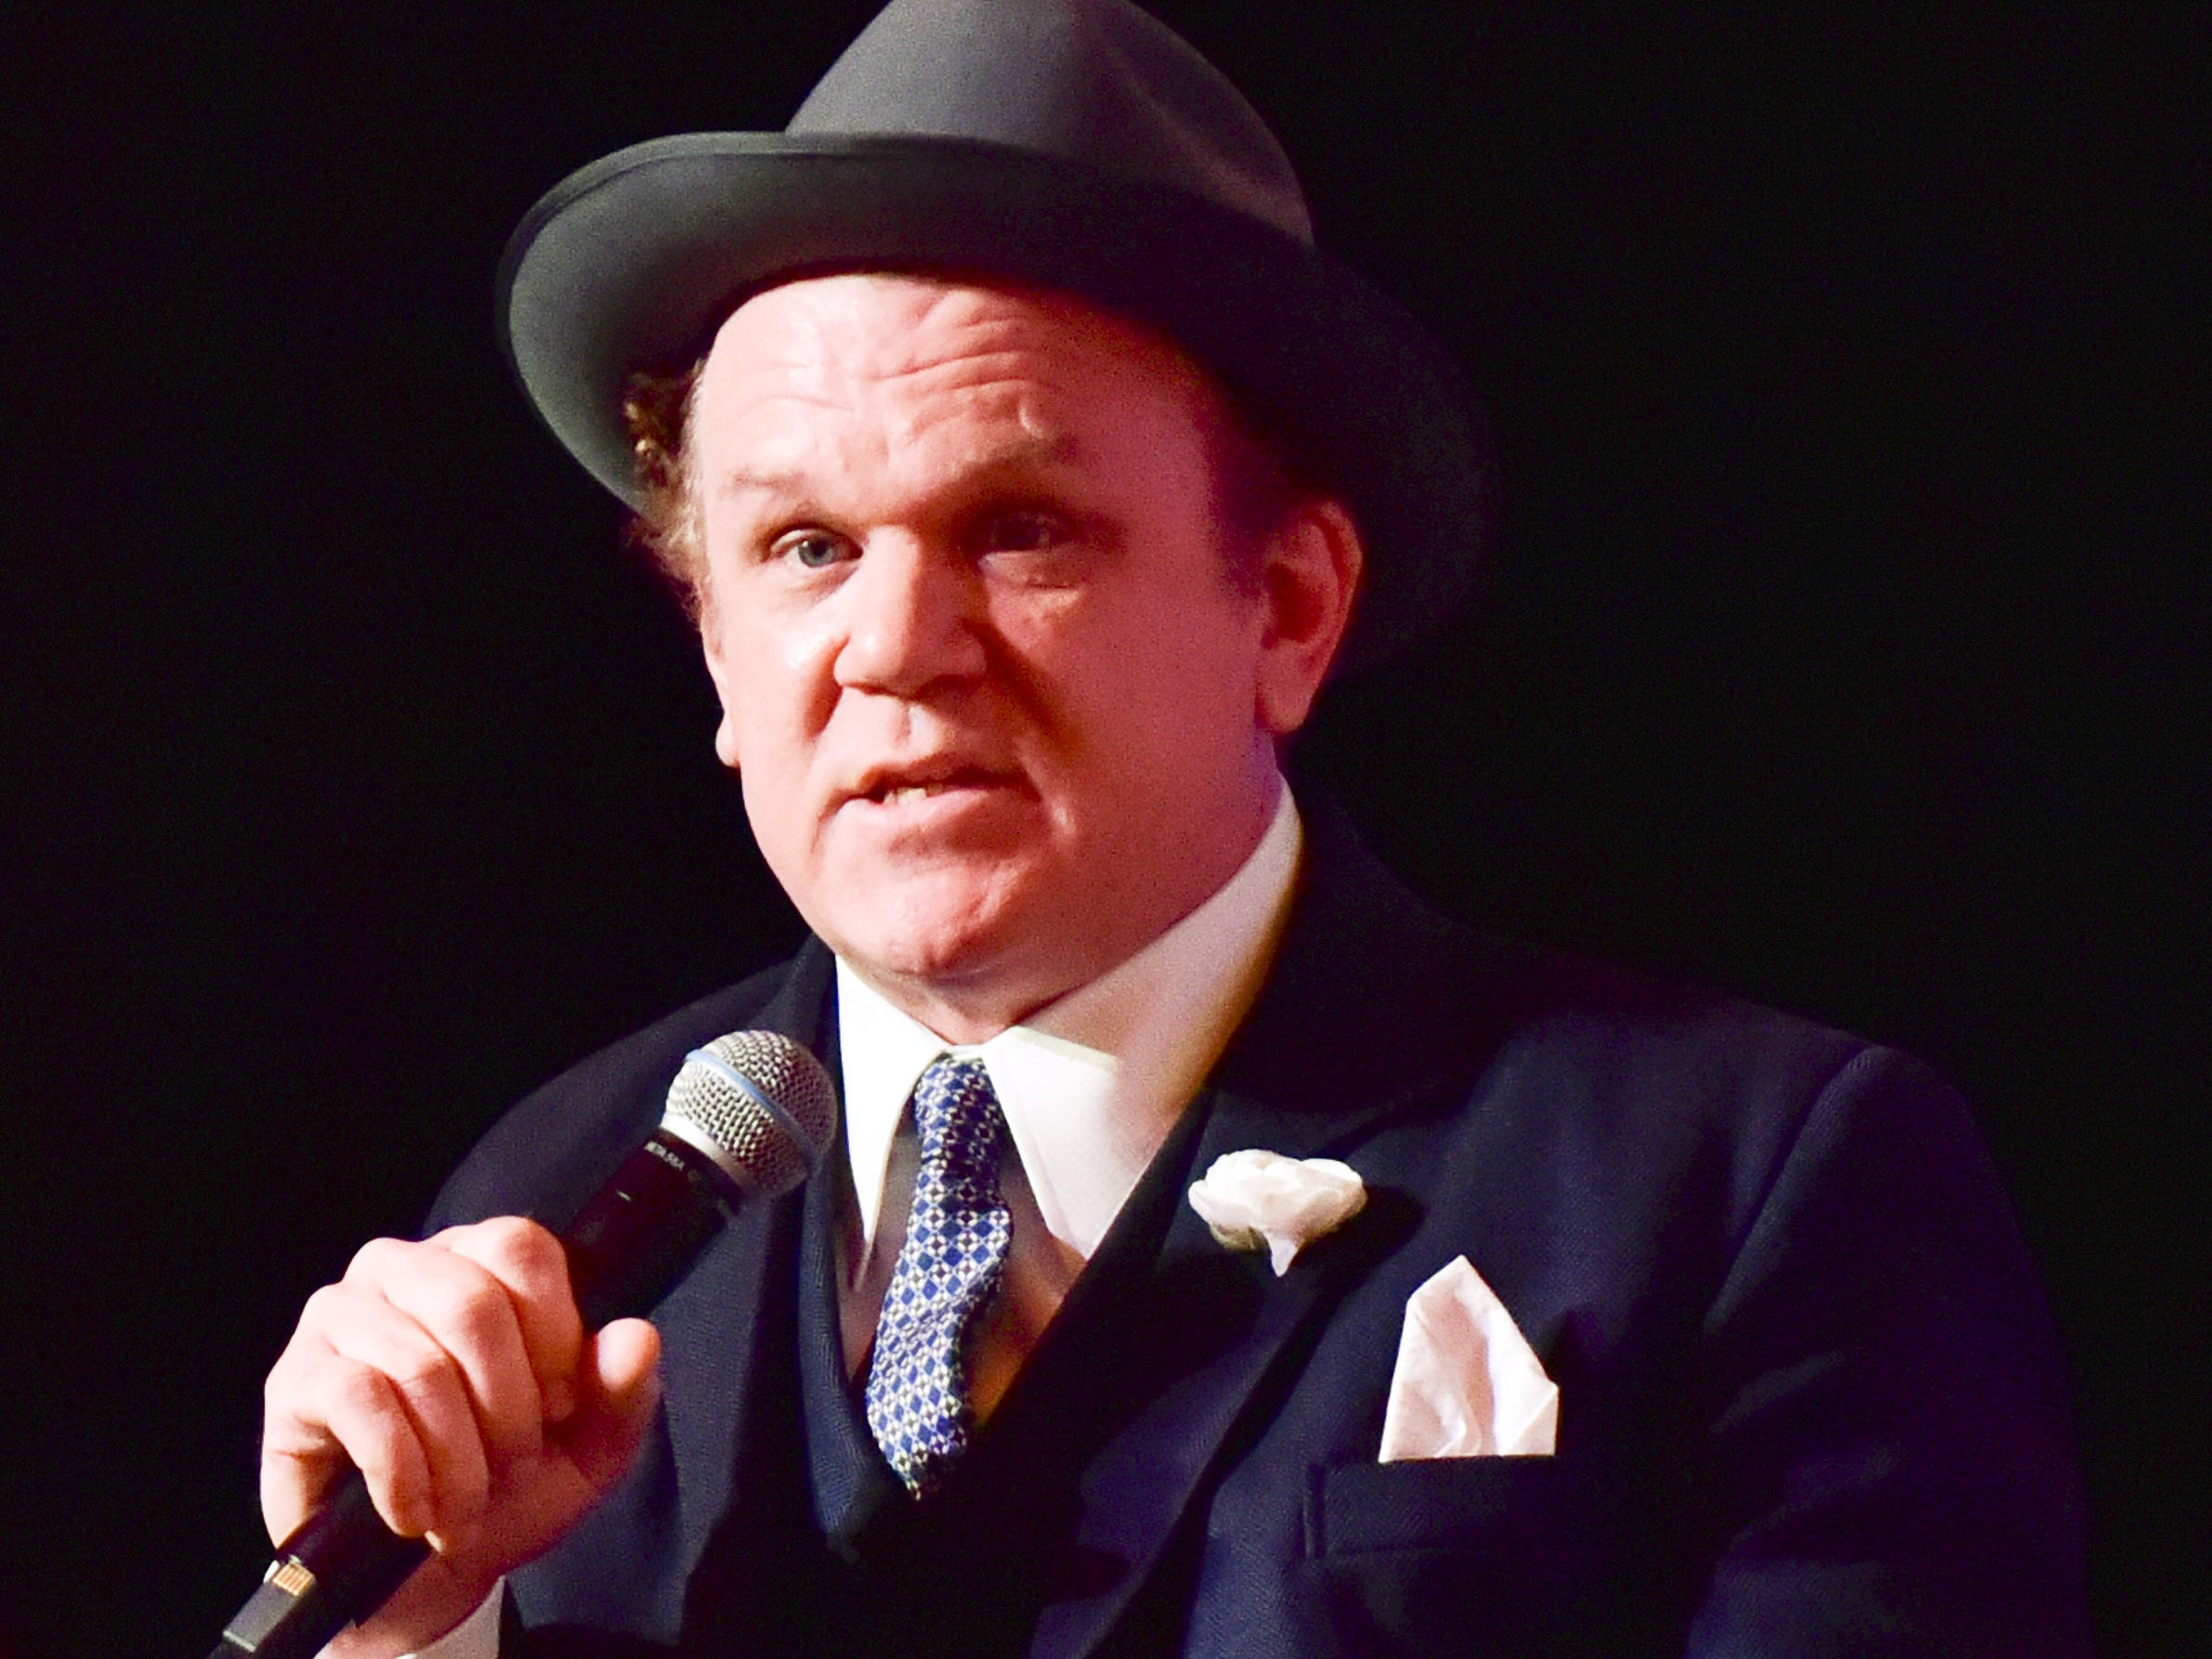 LOS ANGELES, CALIFORNIA - NOVEMBER 11: John C. Reilly speaks onstage at AFI FEST 2018 Presented by Audi - Indie Contenders at The Hollywood Roosevelt Hotel on November 11, 2018 in Los Angeles, California. (Photo by Rodin Eckenroth/Getty Images for AFI) ORG XMIT: 775252718 ORIG FILE ID: 1066342788